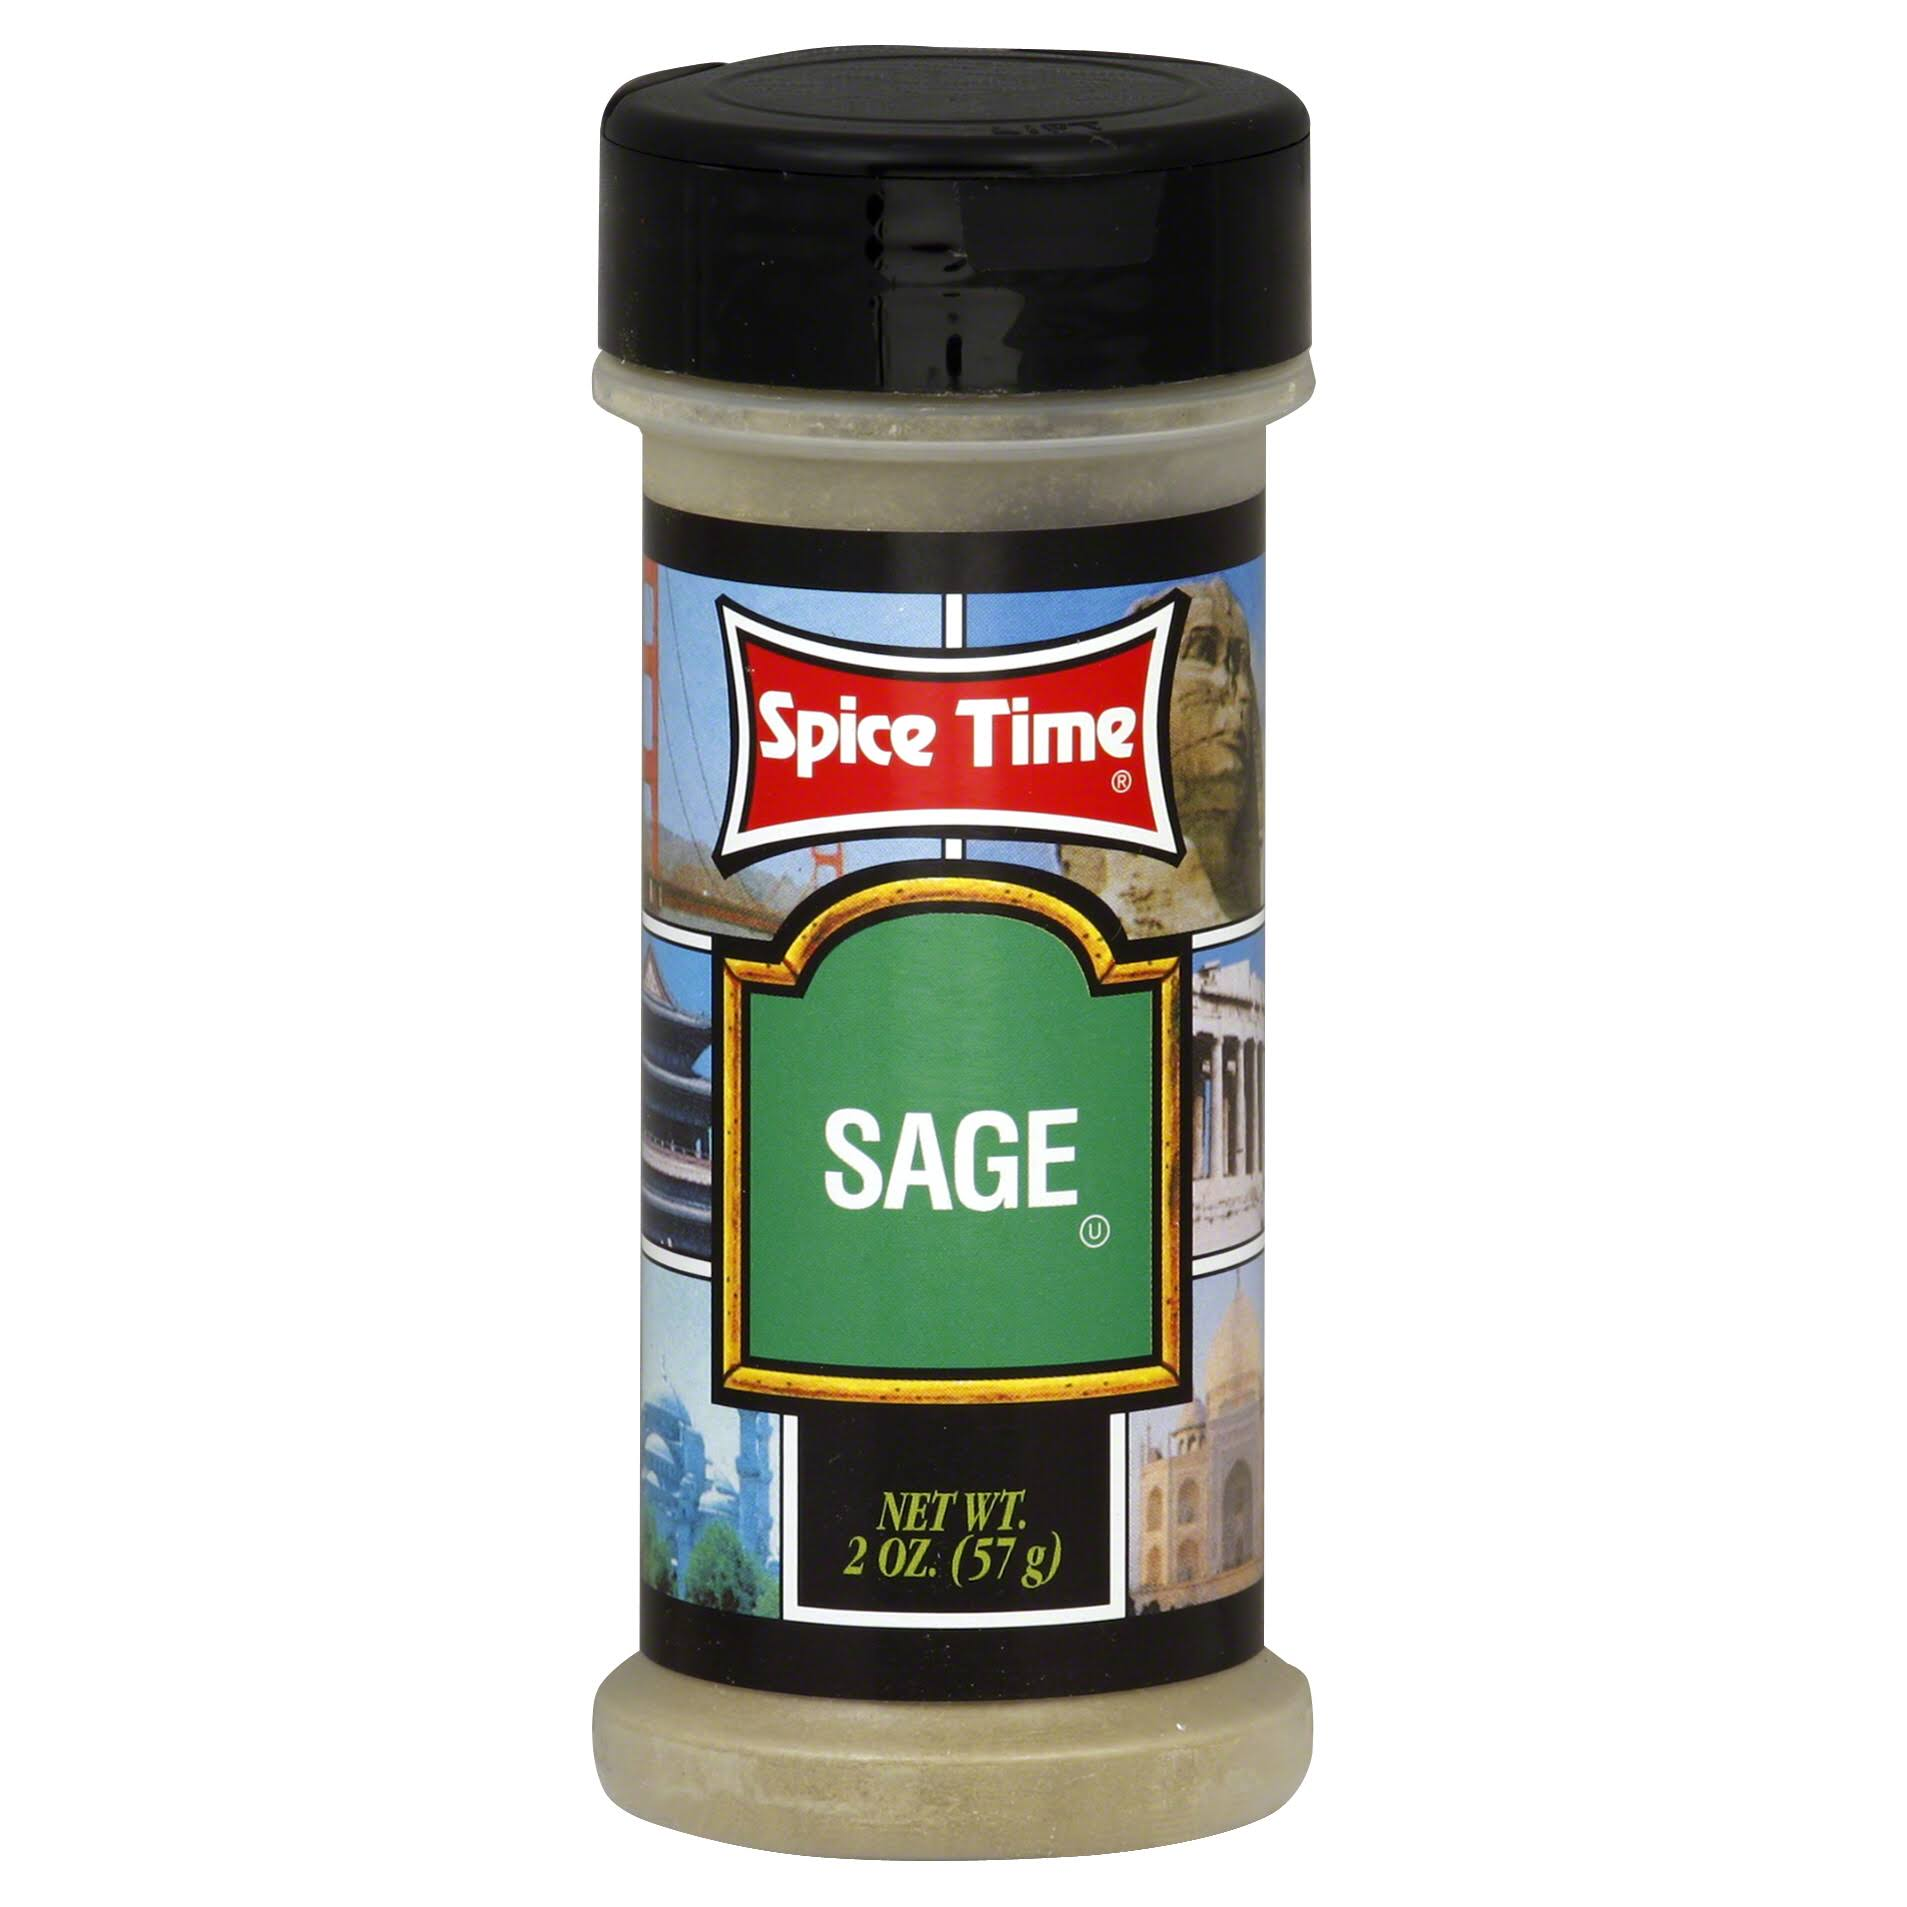 Spice Time Sage - 2 oz